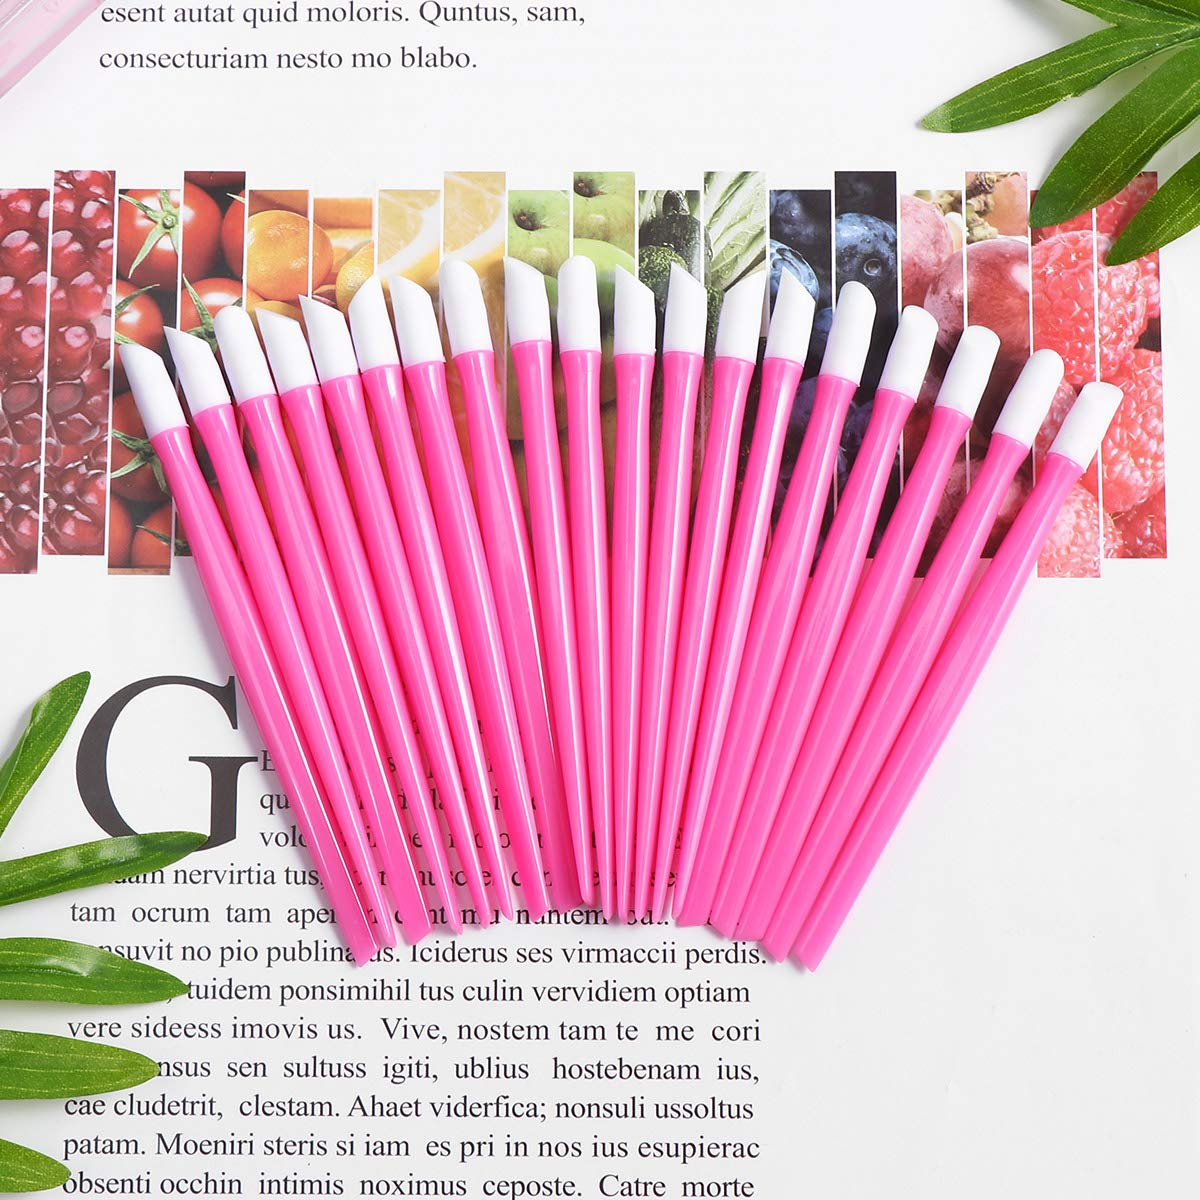 Nail Cuticle Pusher Rubber Cleaning Stick Dead Skin Cleaner Nail Art Tool Nail Dremel, 20Pcs